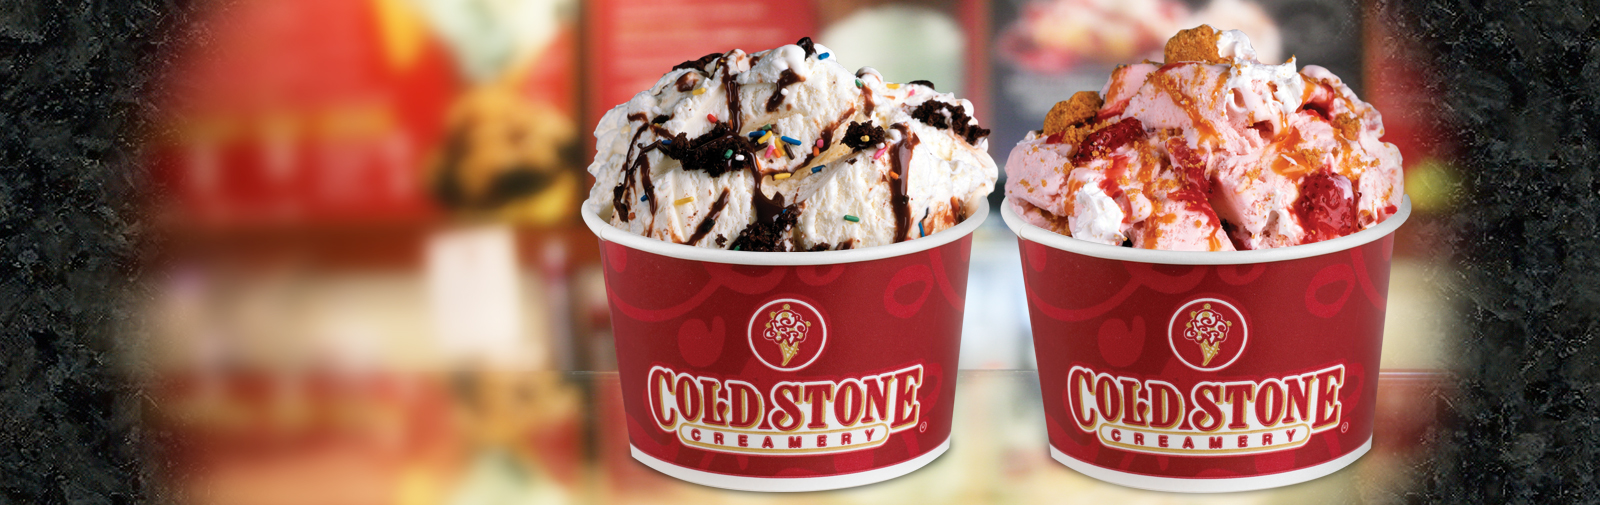 coldstone creamery culture Coldstone creamery takes ice cream seriously - it's more than a couple scoops on a cone instead, take your pick of one of their specialty creations, including.